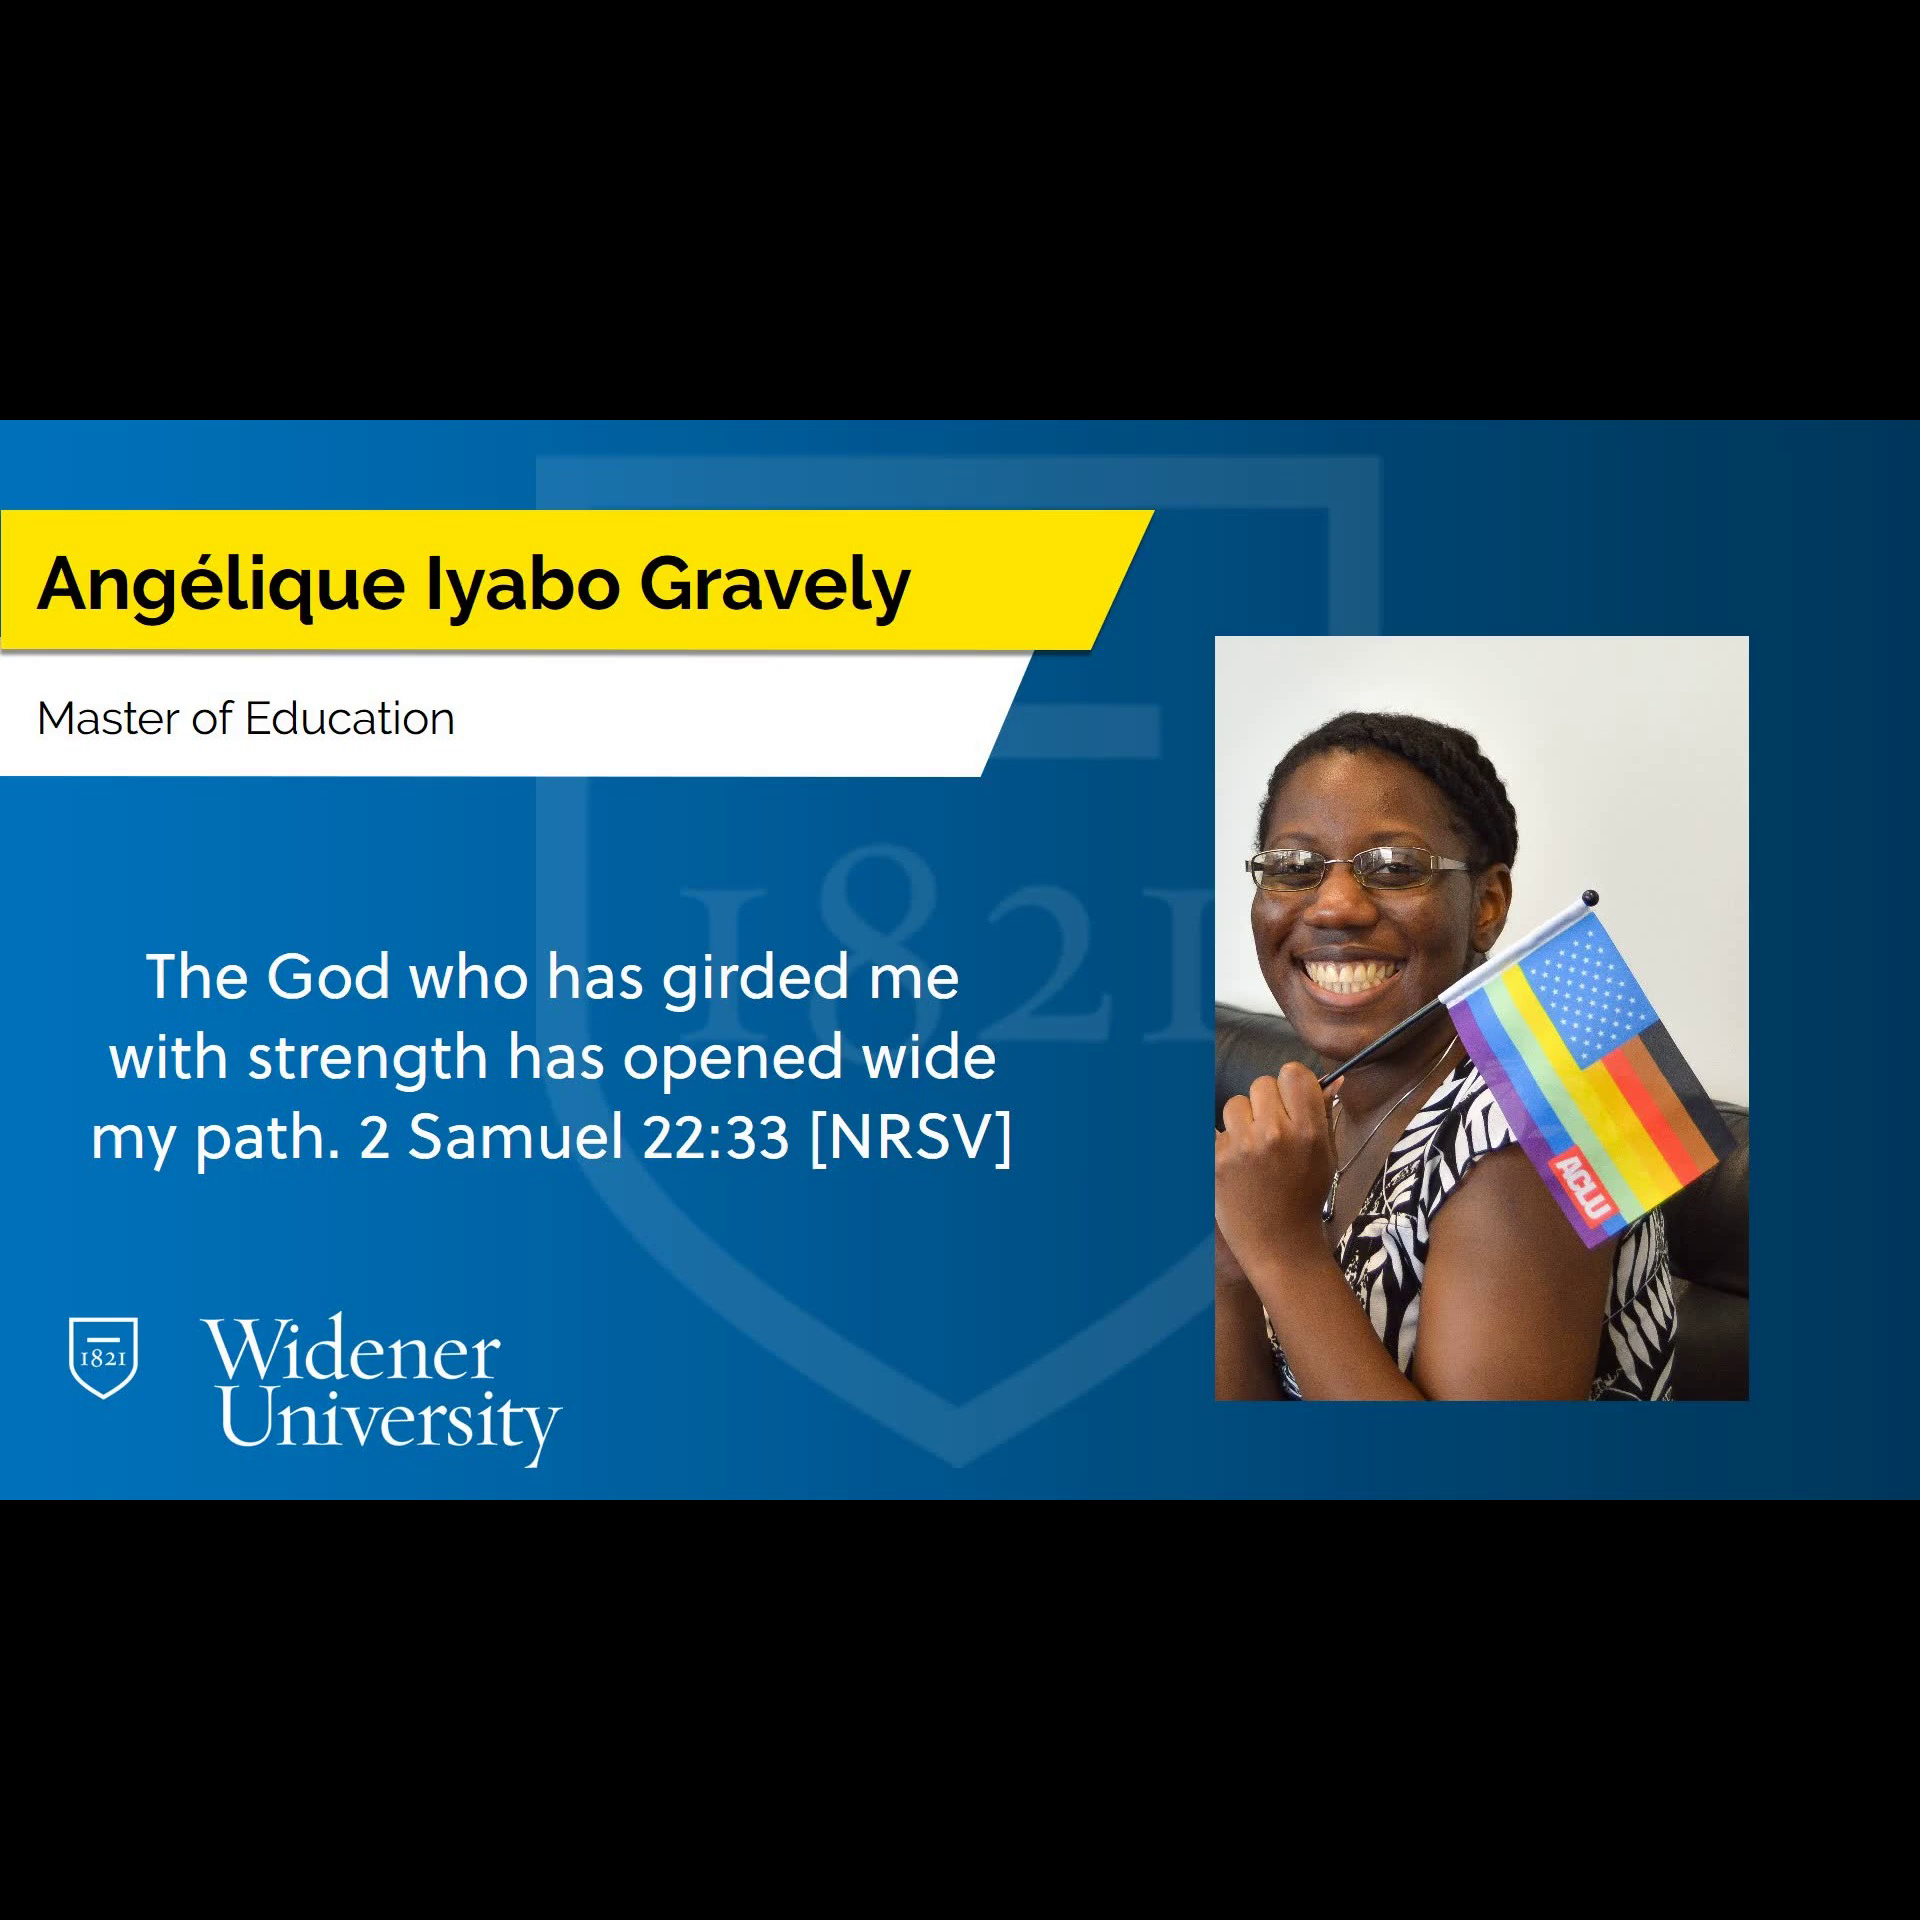 """A blue slide with a photo of Angel smiling and holding a small More Color, More Pride themed US flag that has the ACLU logo on the bottom. At the top of the slide, it reads """"Angélique Iyabo Gravely, Master of Education."""" In the center of the slide it reads, """"The God who has girded me with strength has opened wide my path. 2 Samuel 22:33 [NRSV]"""" At the bottom of the slide, it says """"Widener University"""" next to the university logo."""